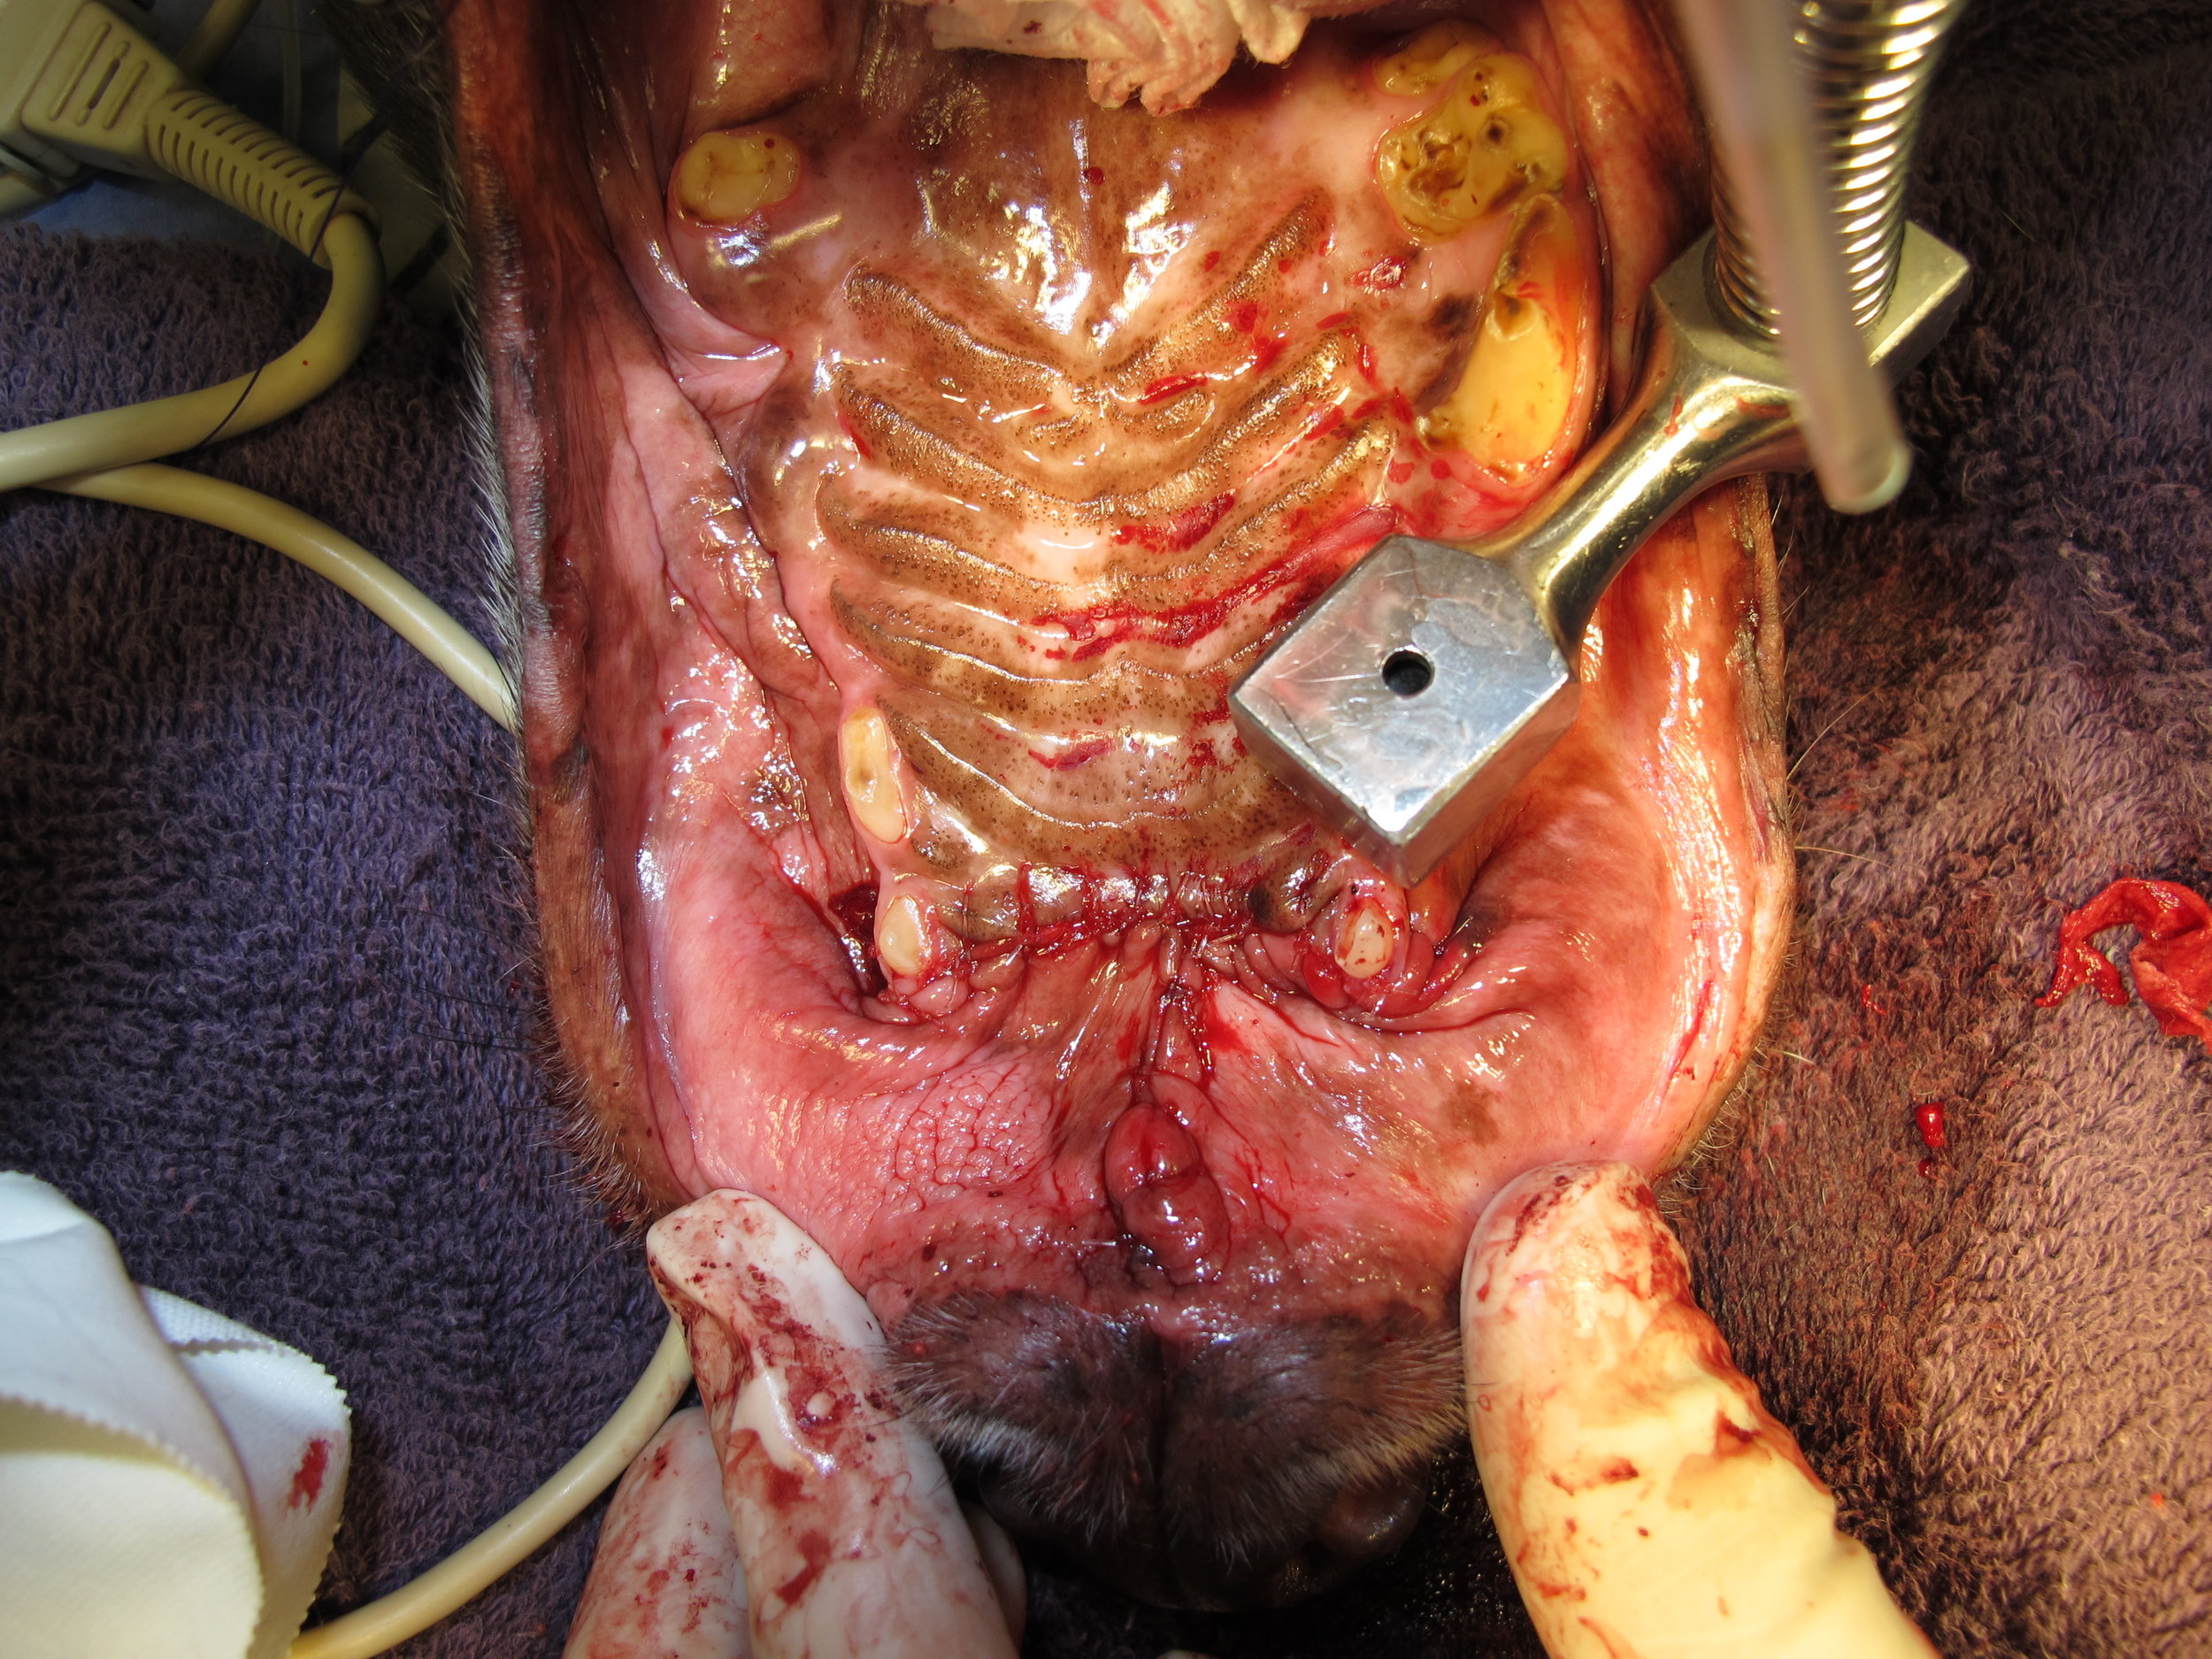 BILATERAL ROSTRAL MAXILLECTOMY